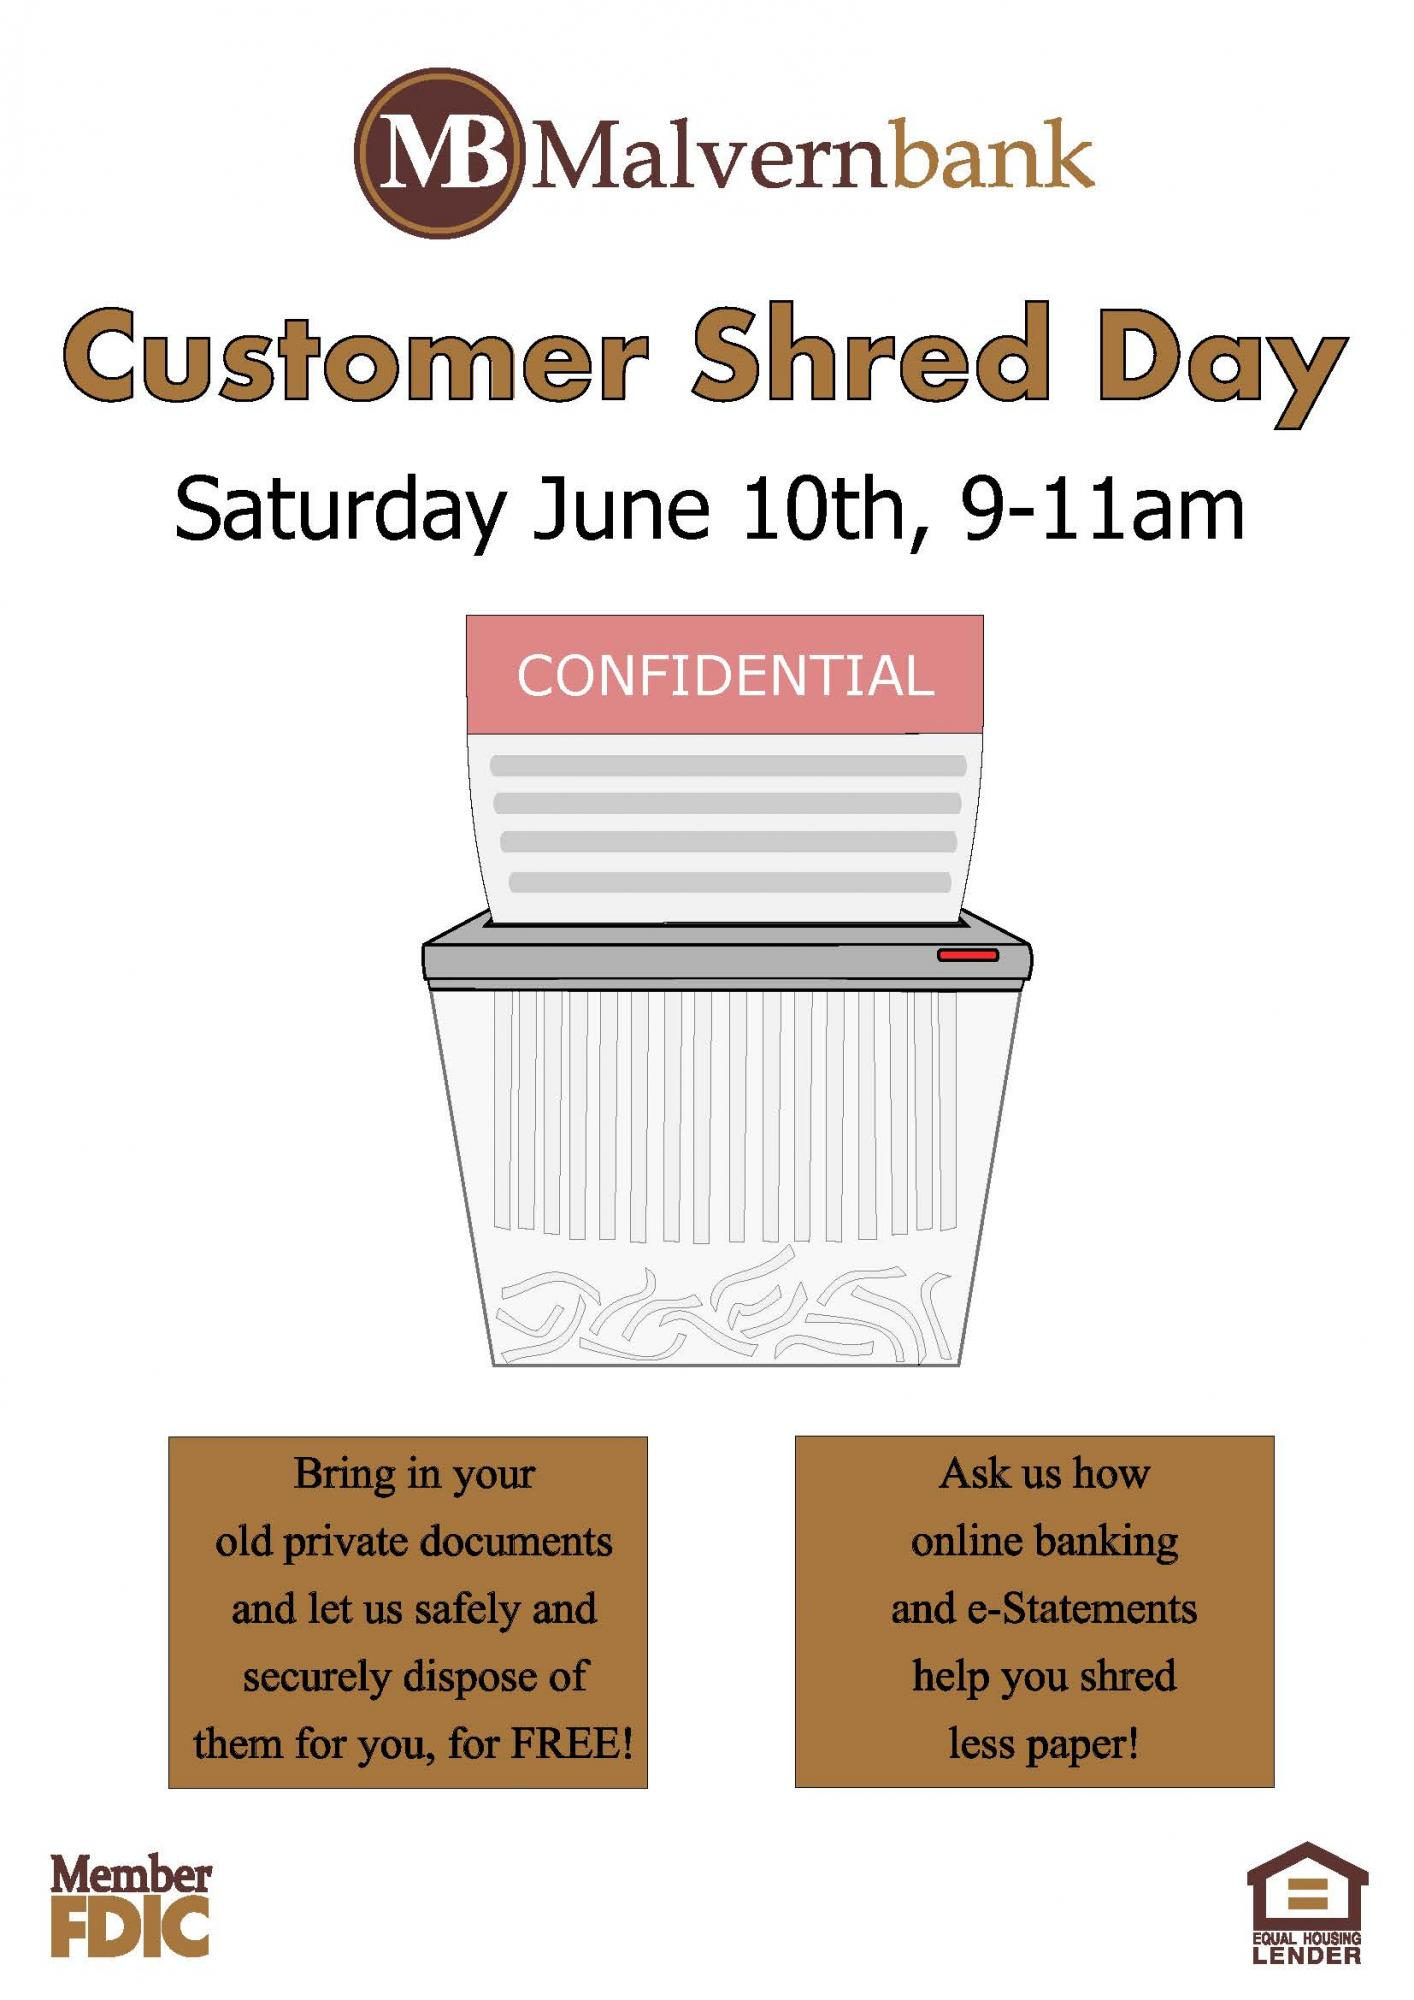 Paper shredder advertisement for shred day on 6/10/17